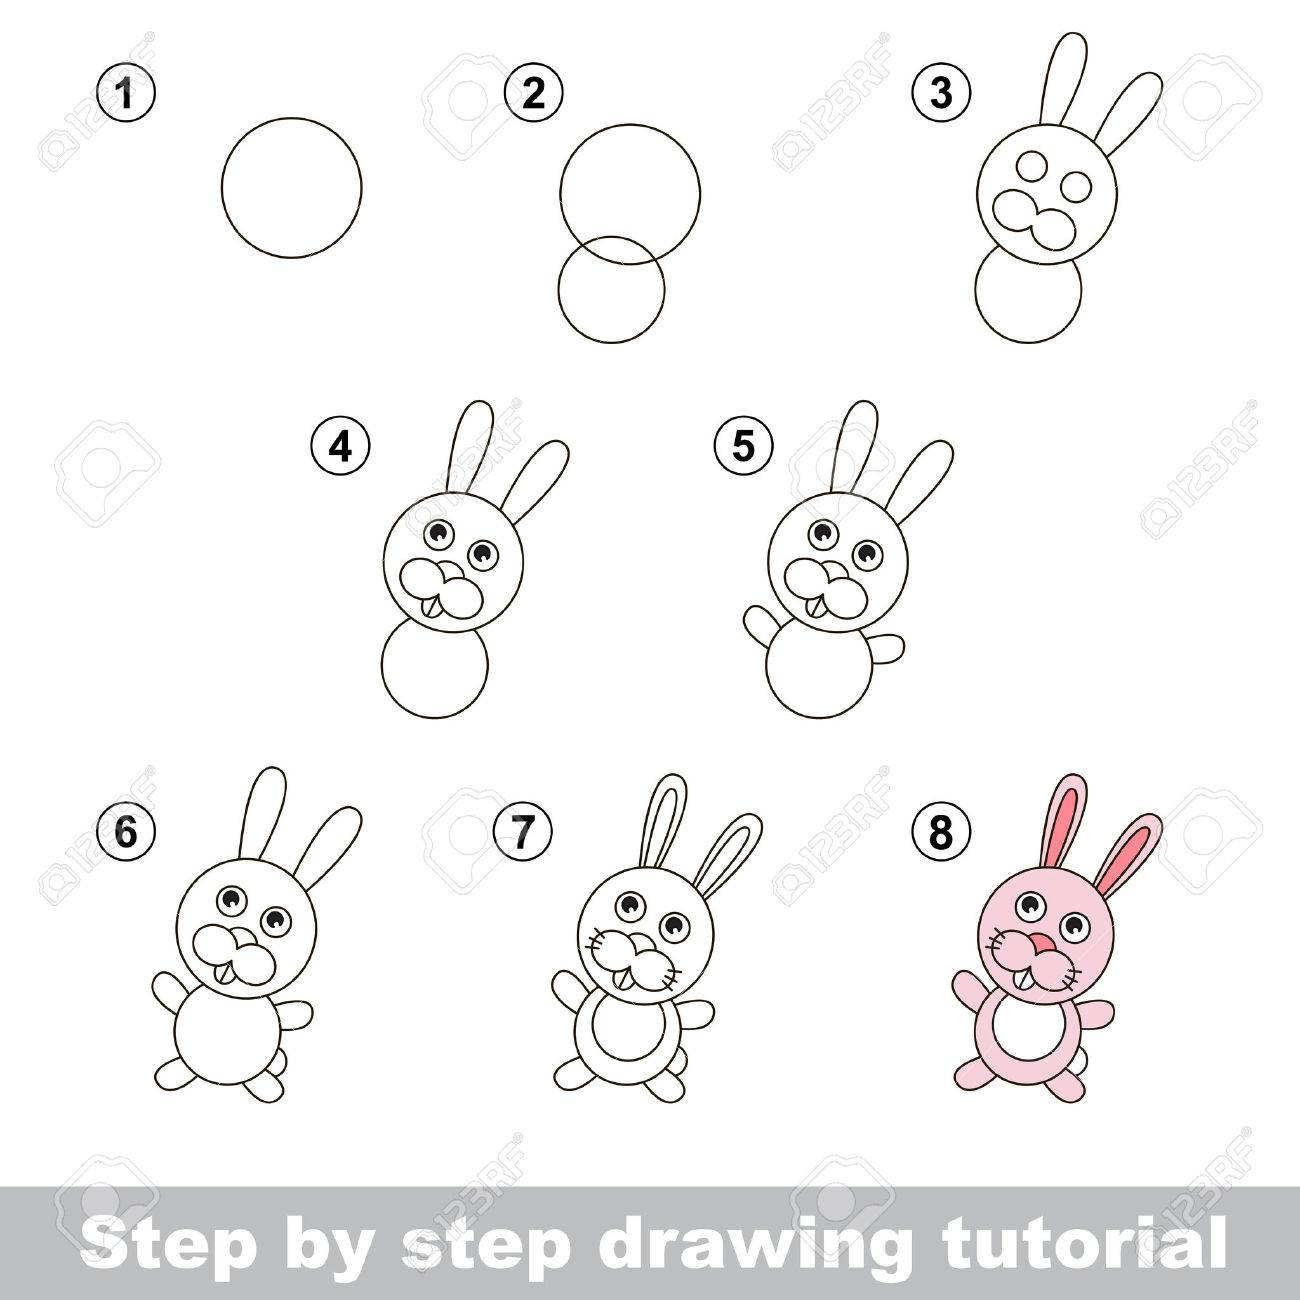 Step by step drawing tutorial visual game for kids how to draw a little